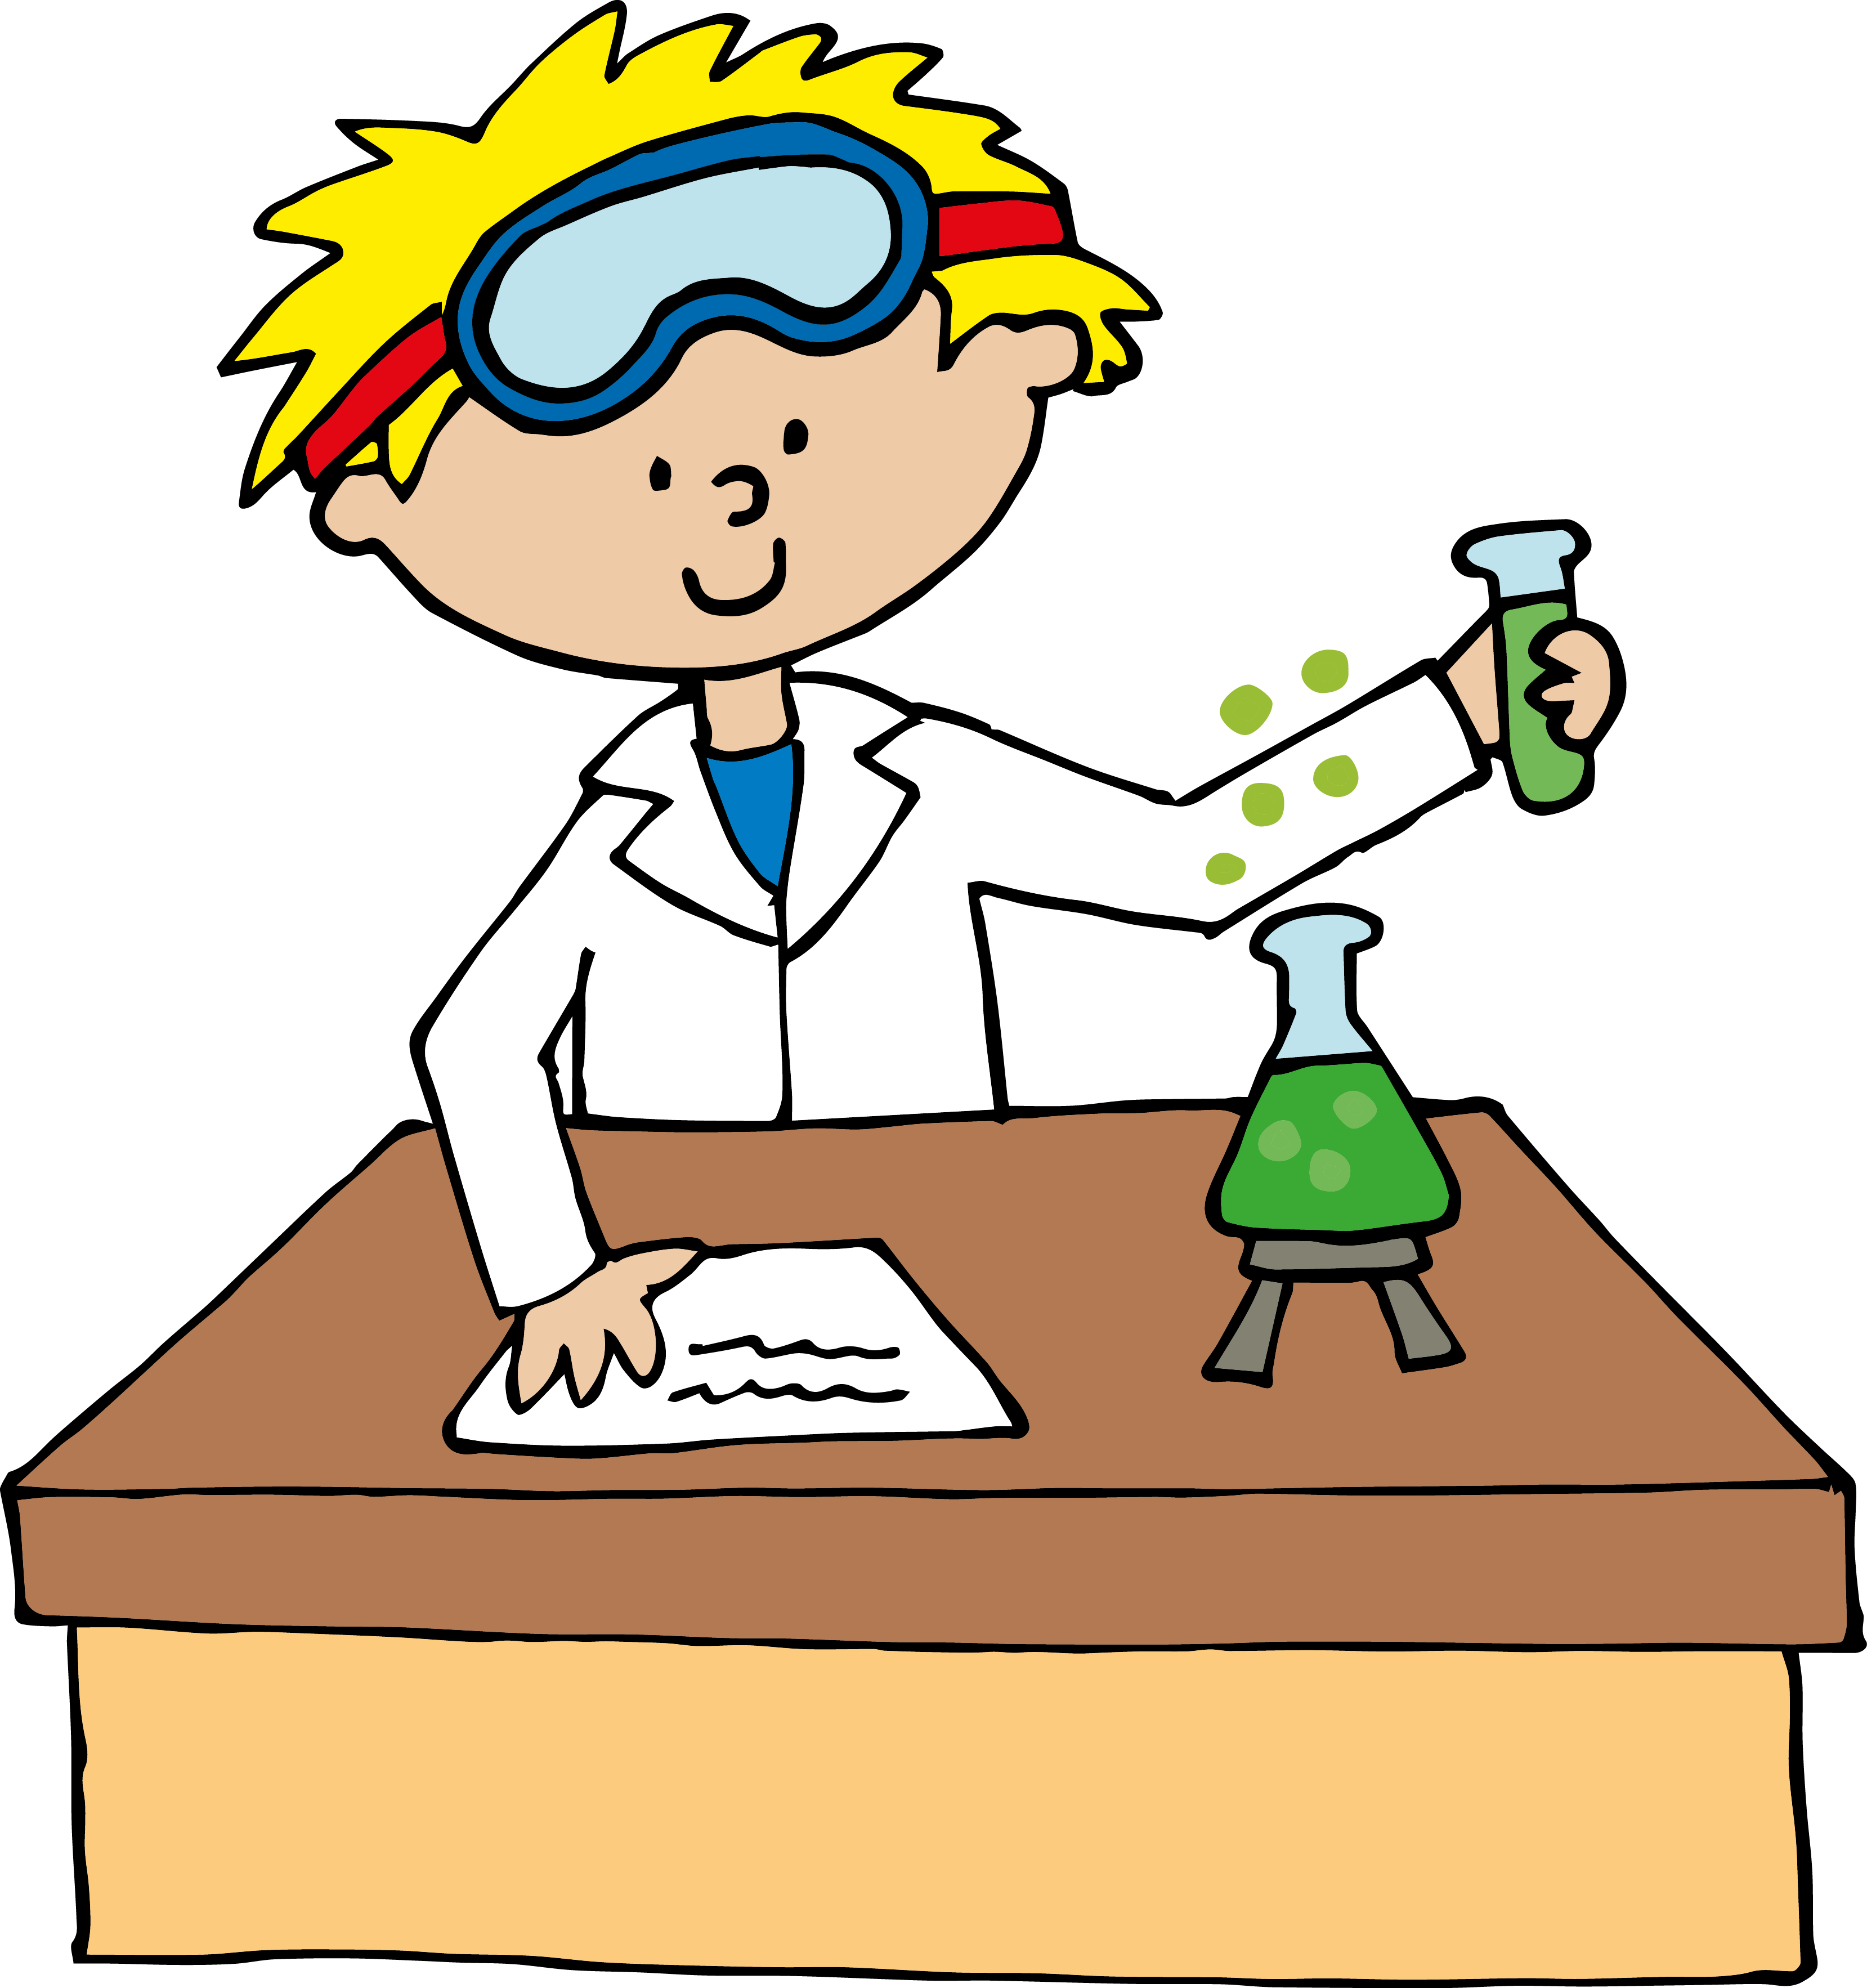 Stem clipart science experiment science. Free experiments cliparts download